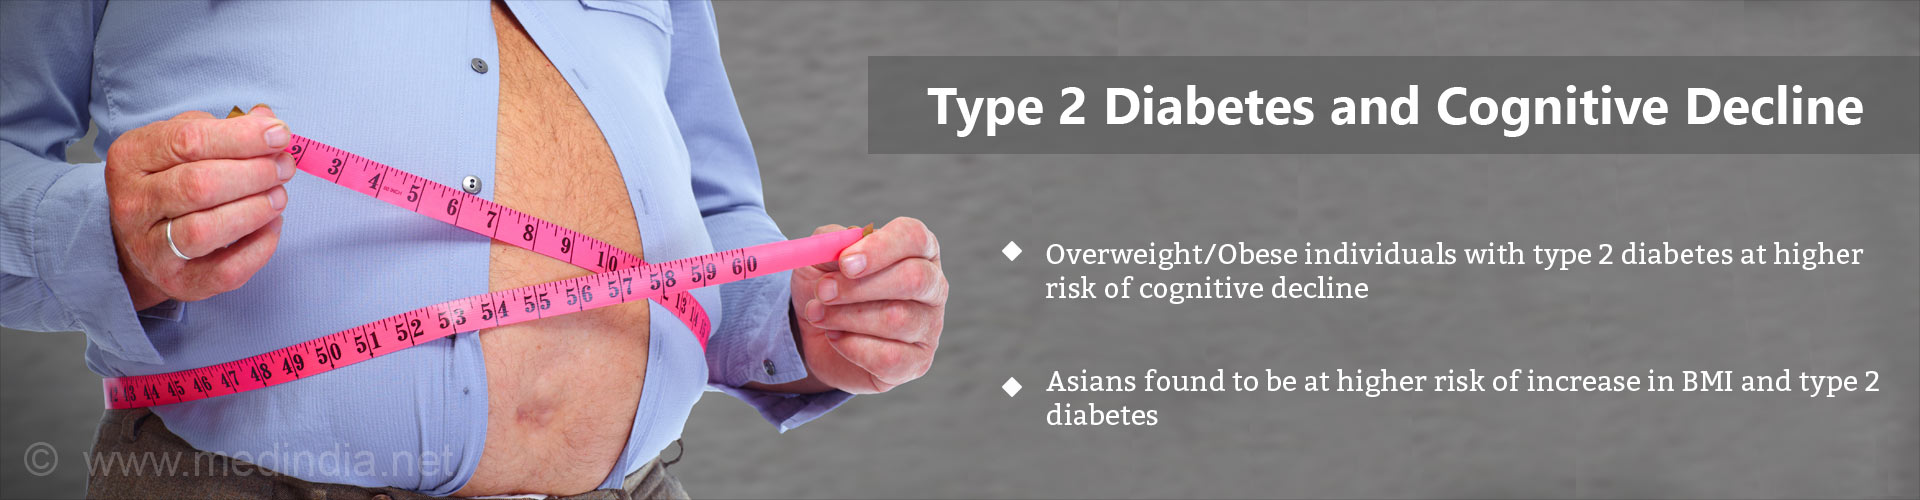 Higher Risk of Cognitive Decline Among Obese Type 2 Diabetes Patients